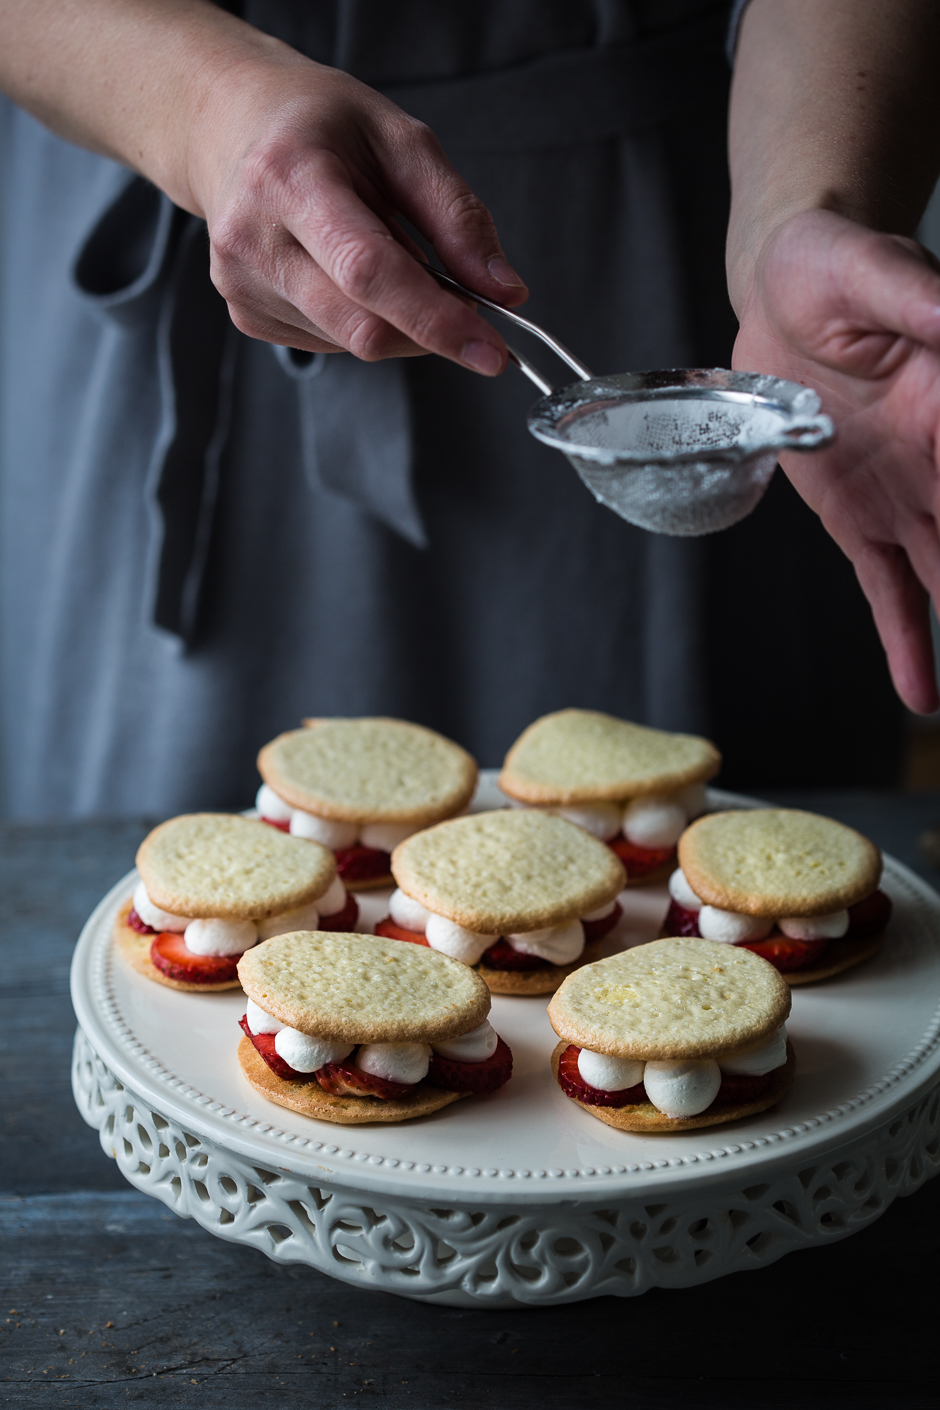 Strawberry and cream filled sandwiches from the Taste of Memories Hungarian country kitchen